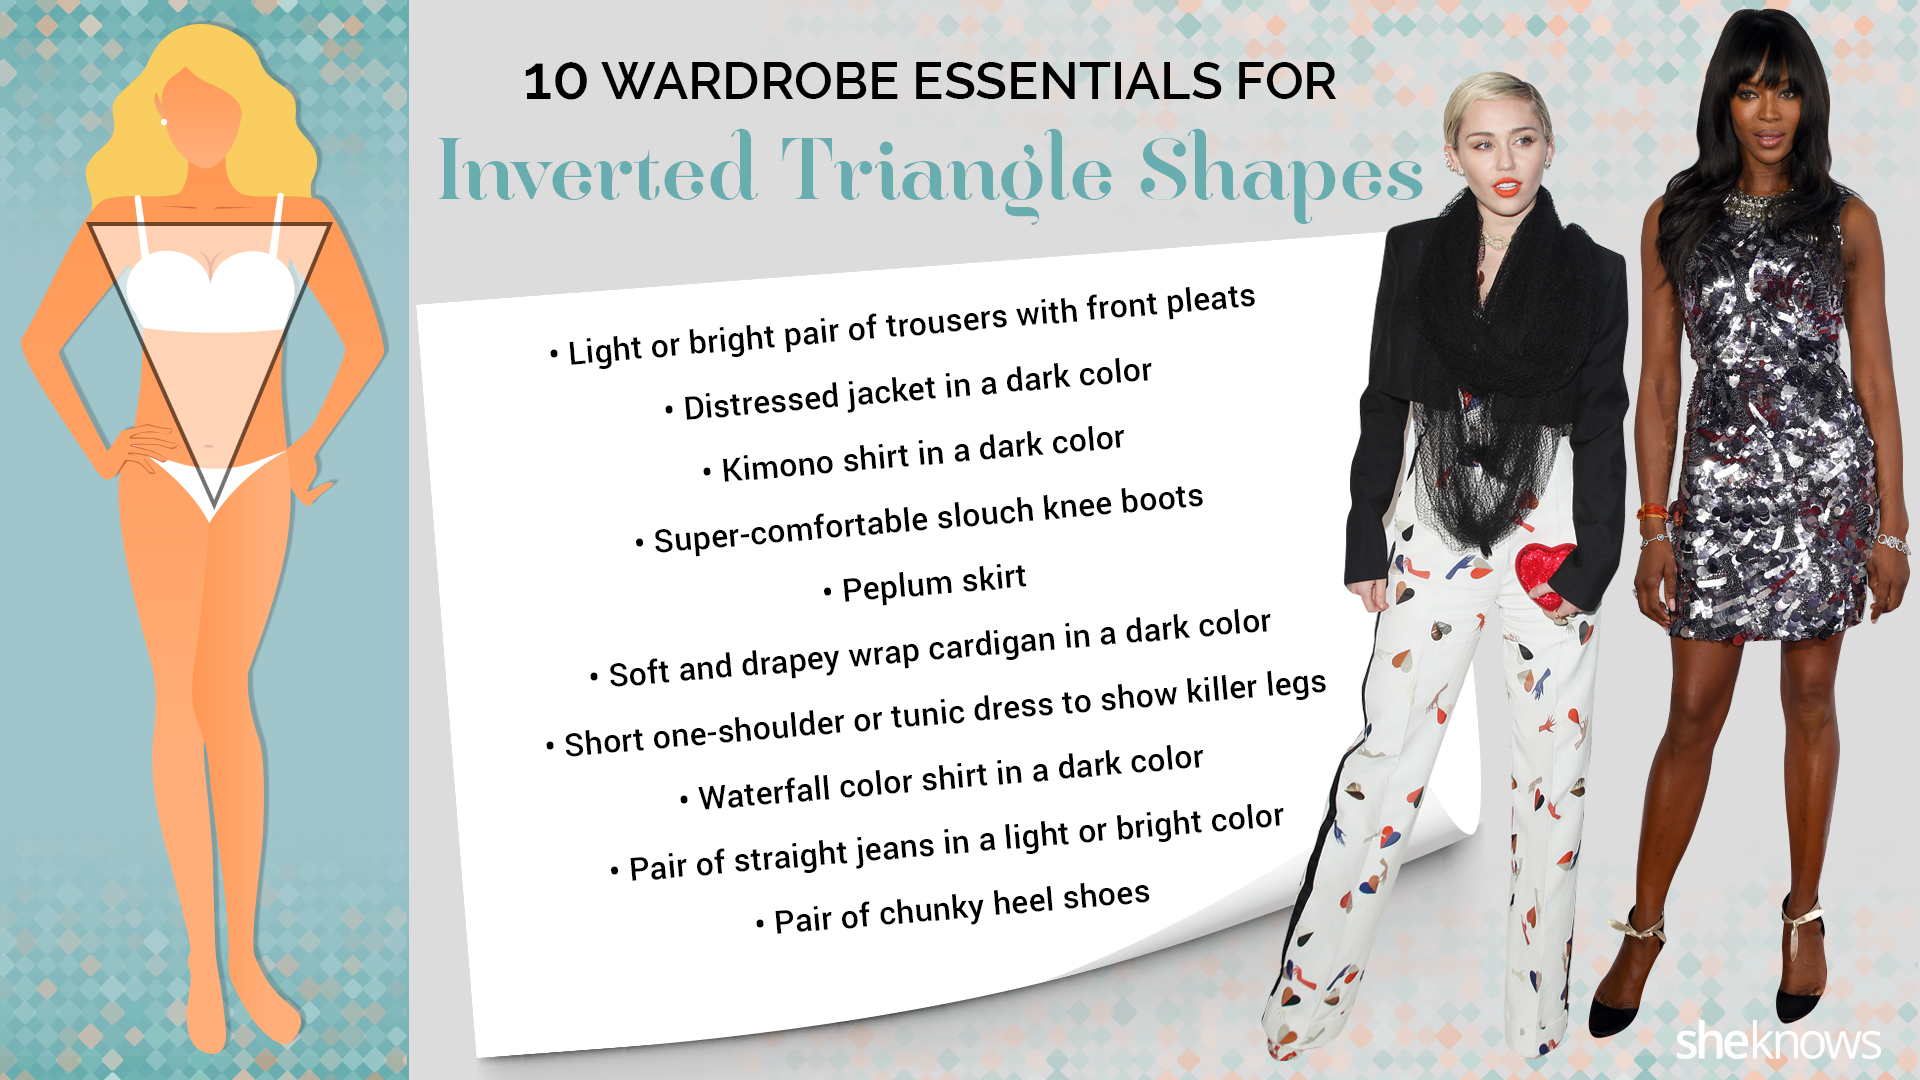 Inverted triangle shape